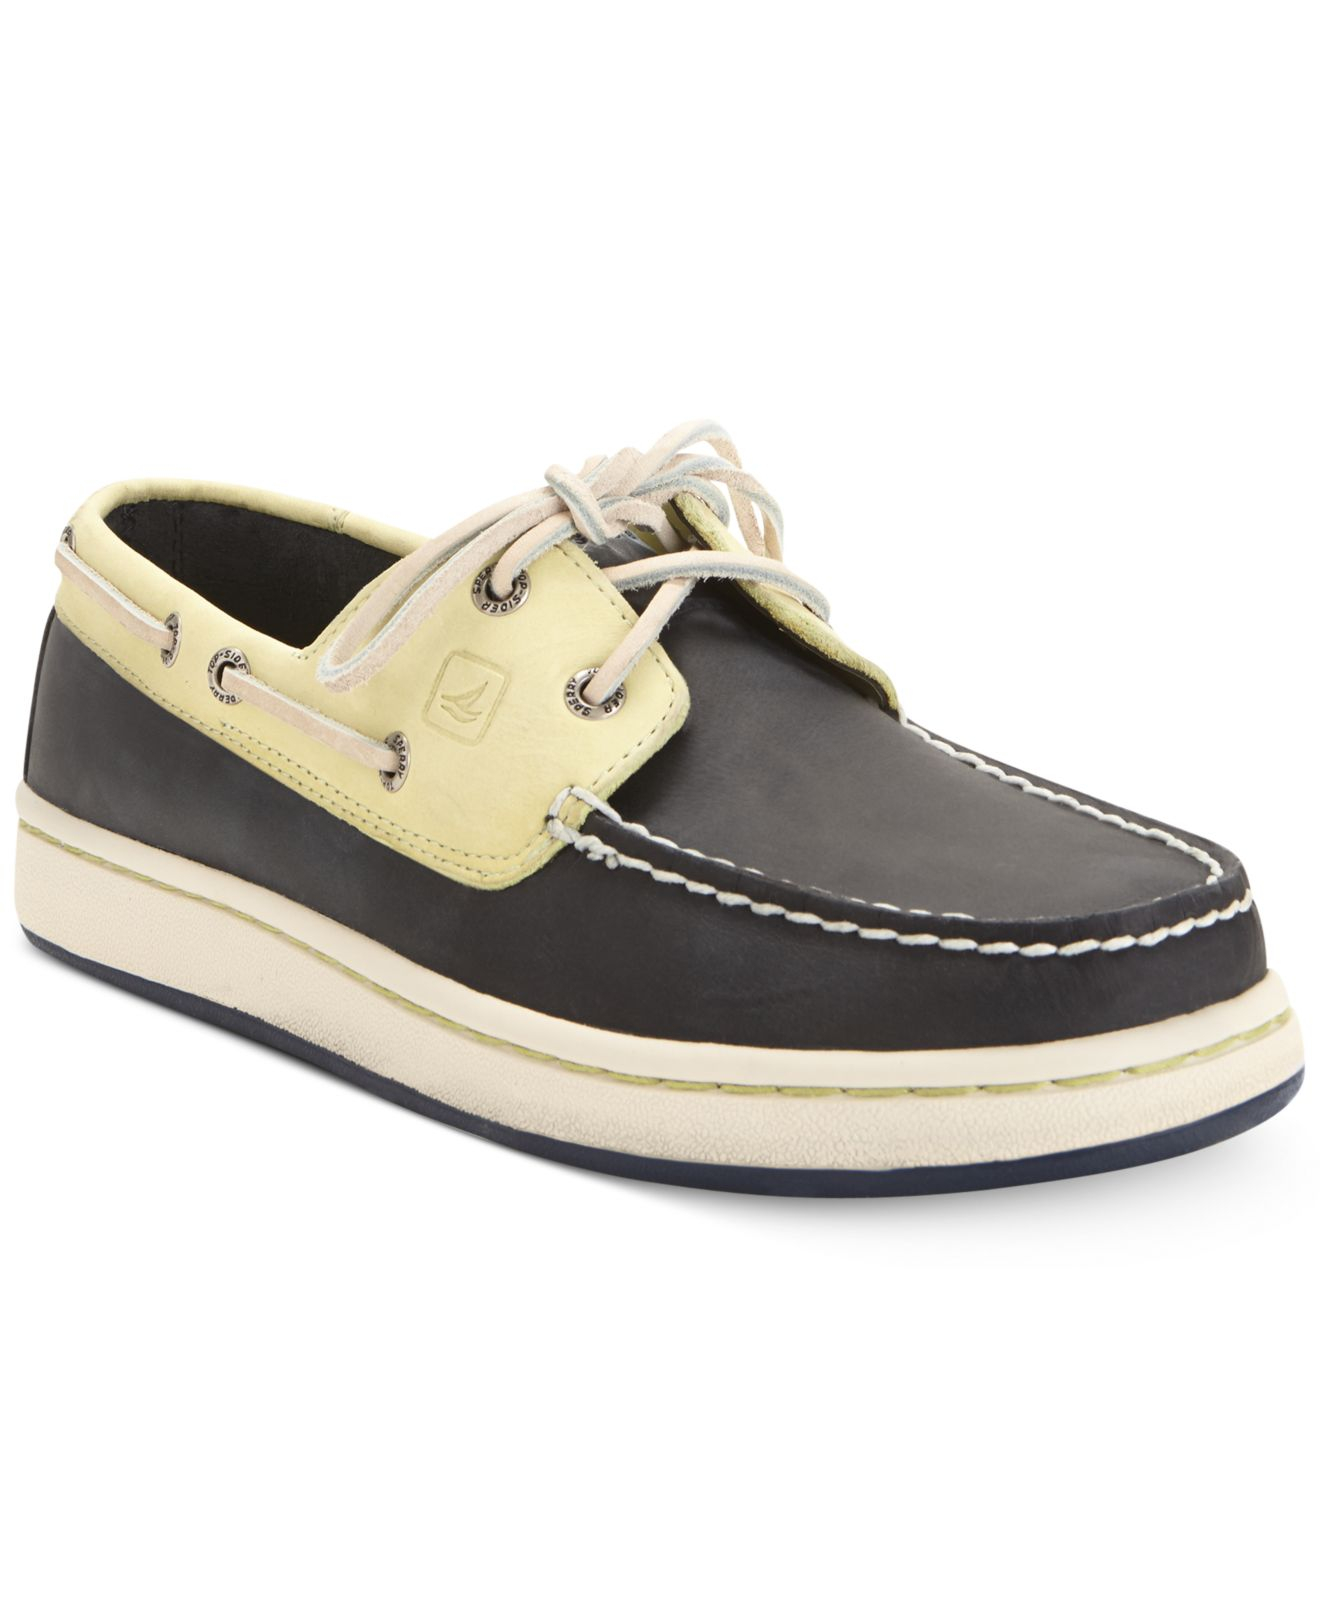 Macy S Sperry Shoes For Men